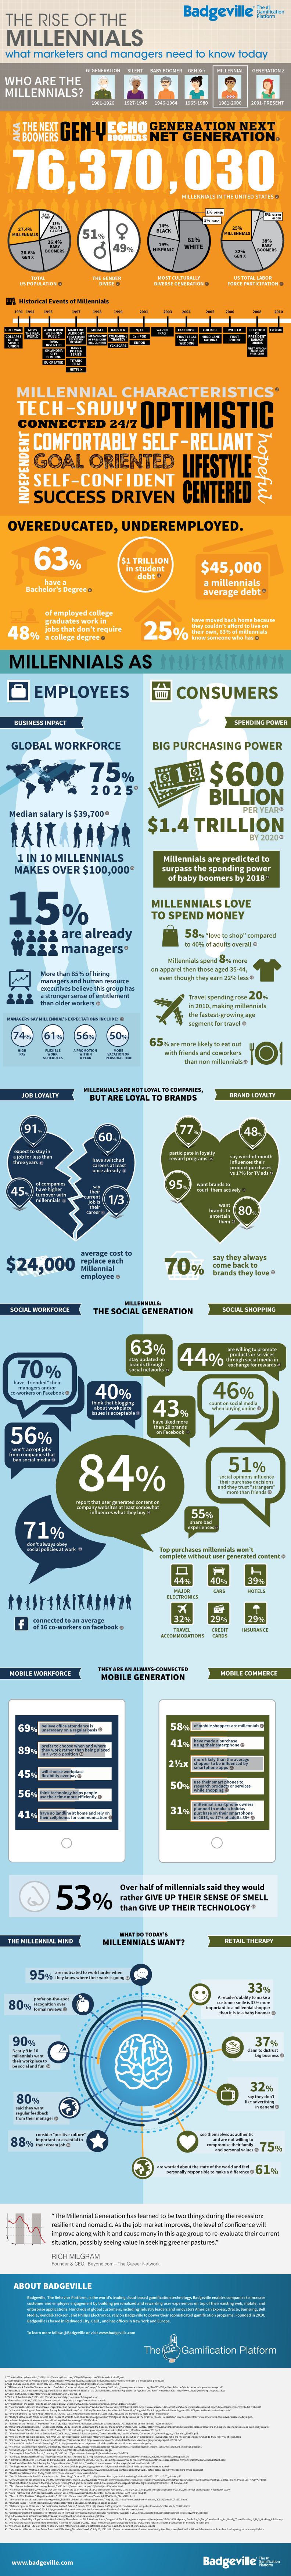 The Rise of the Millennials Infographic